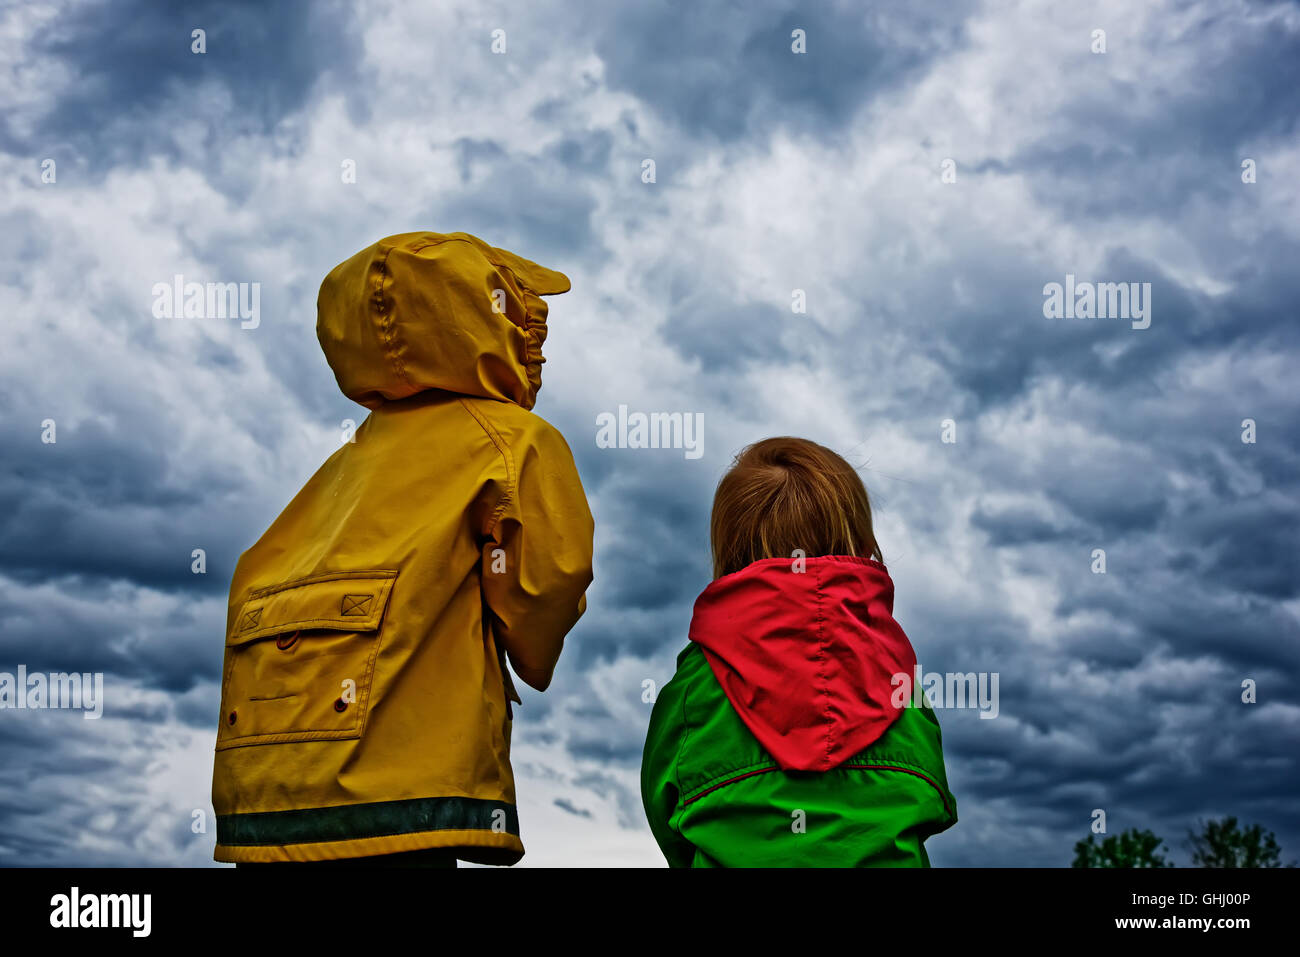 Two children stood together looking anxiously at an approaching storm - Stock Image